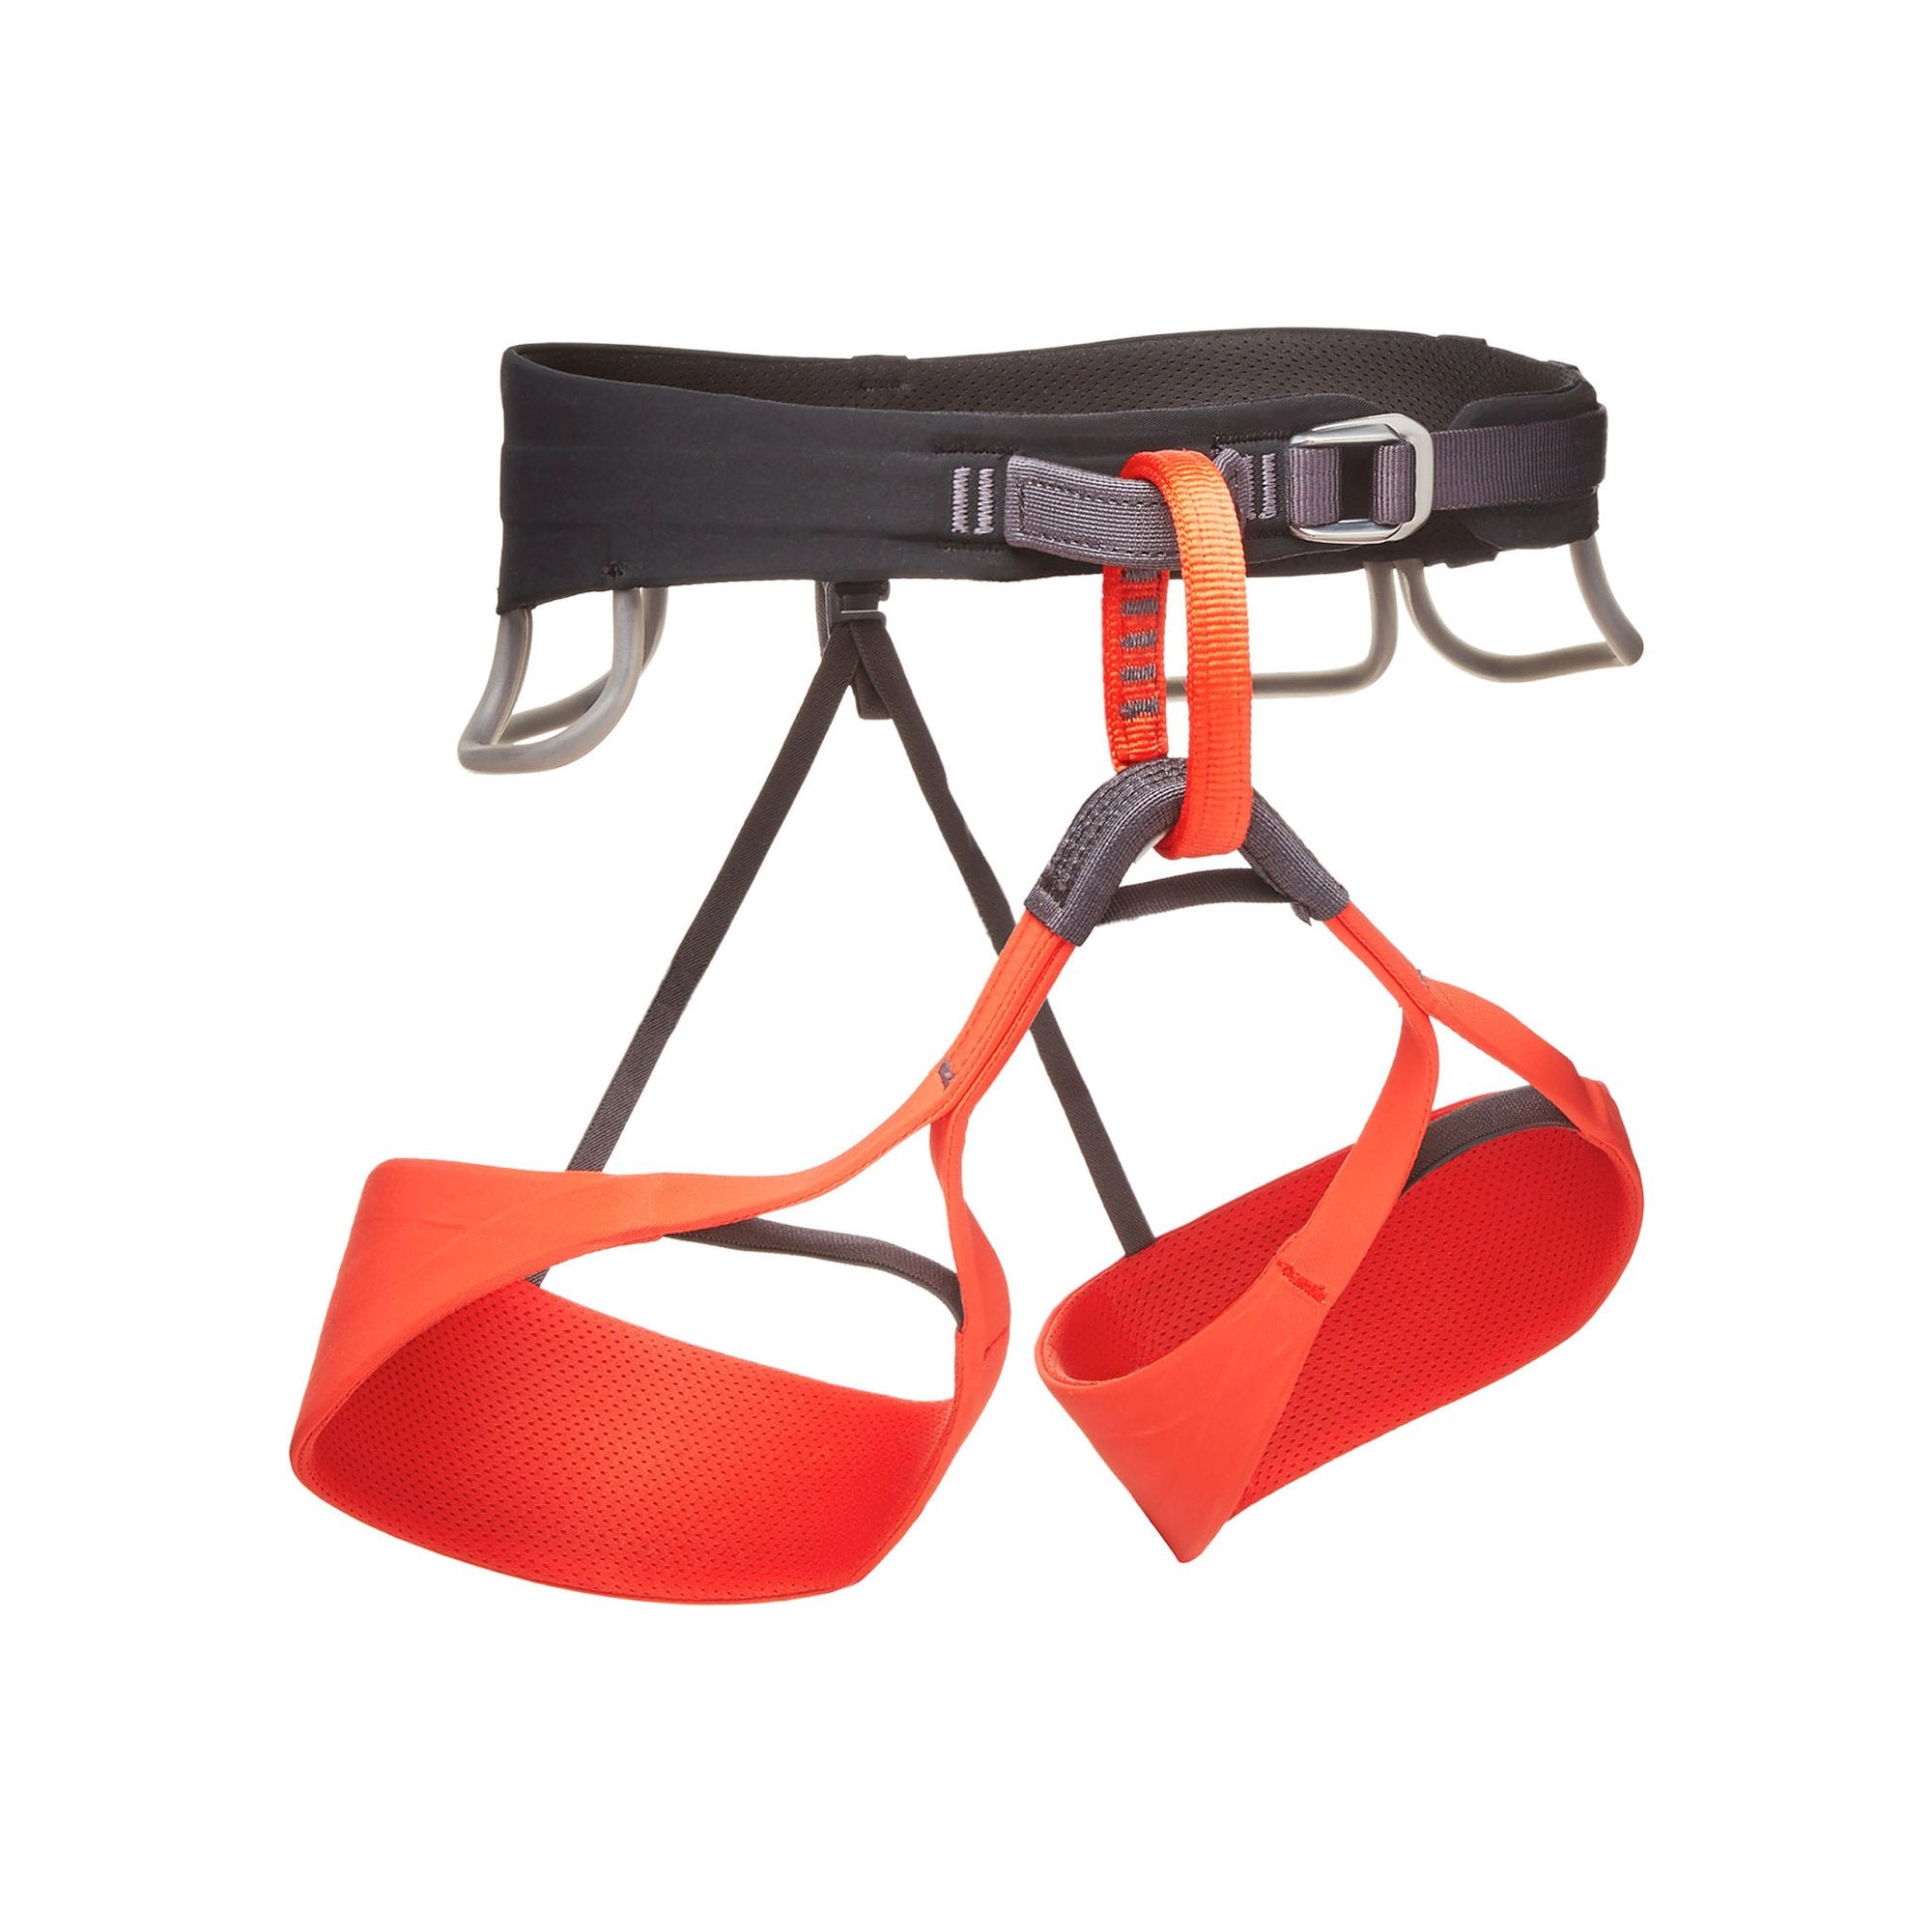 Black Diamond Solution Womens climbing harness, in black and red colours